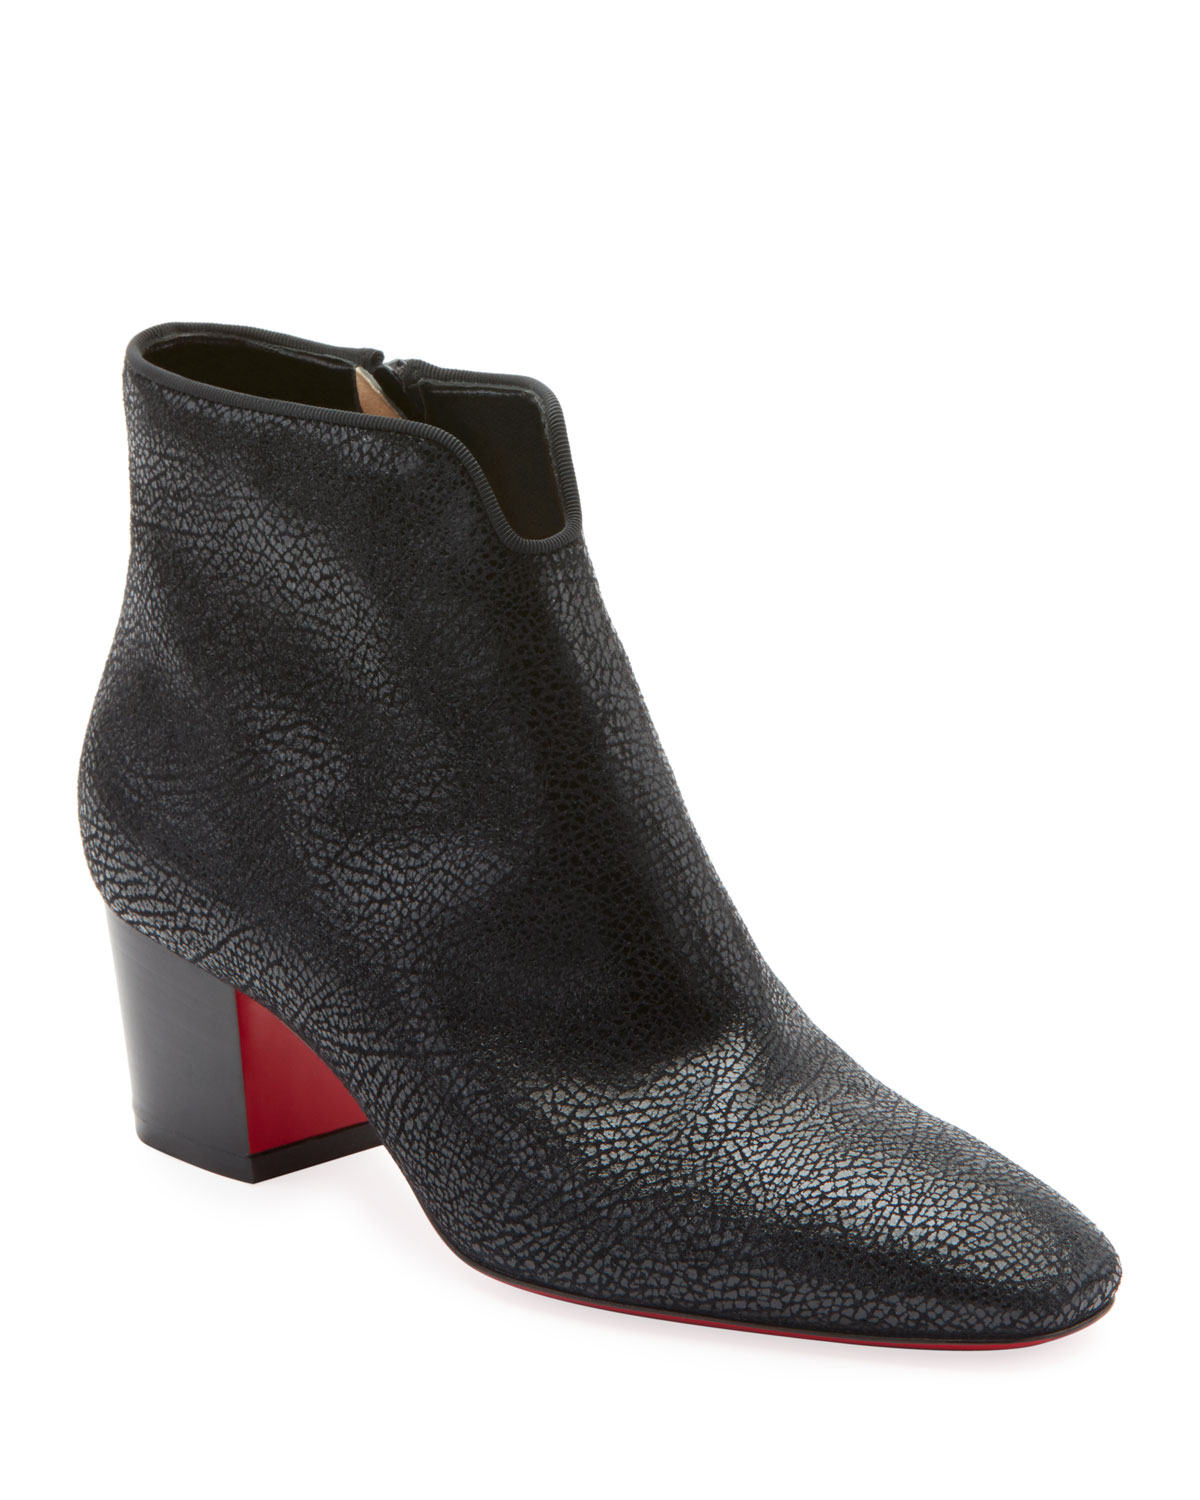 4707403366a1 Christian Louboutin Disco 70s Low-Heel Wet-Look Suede Red Sole Booties